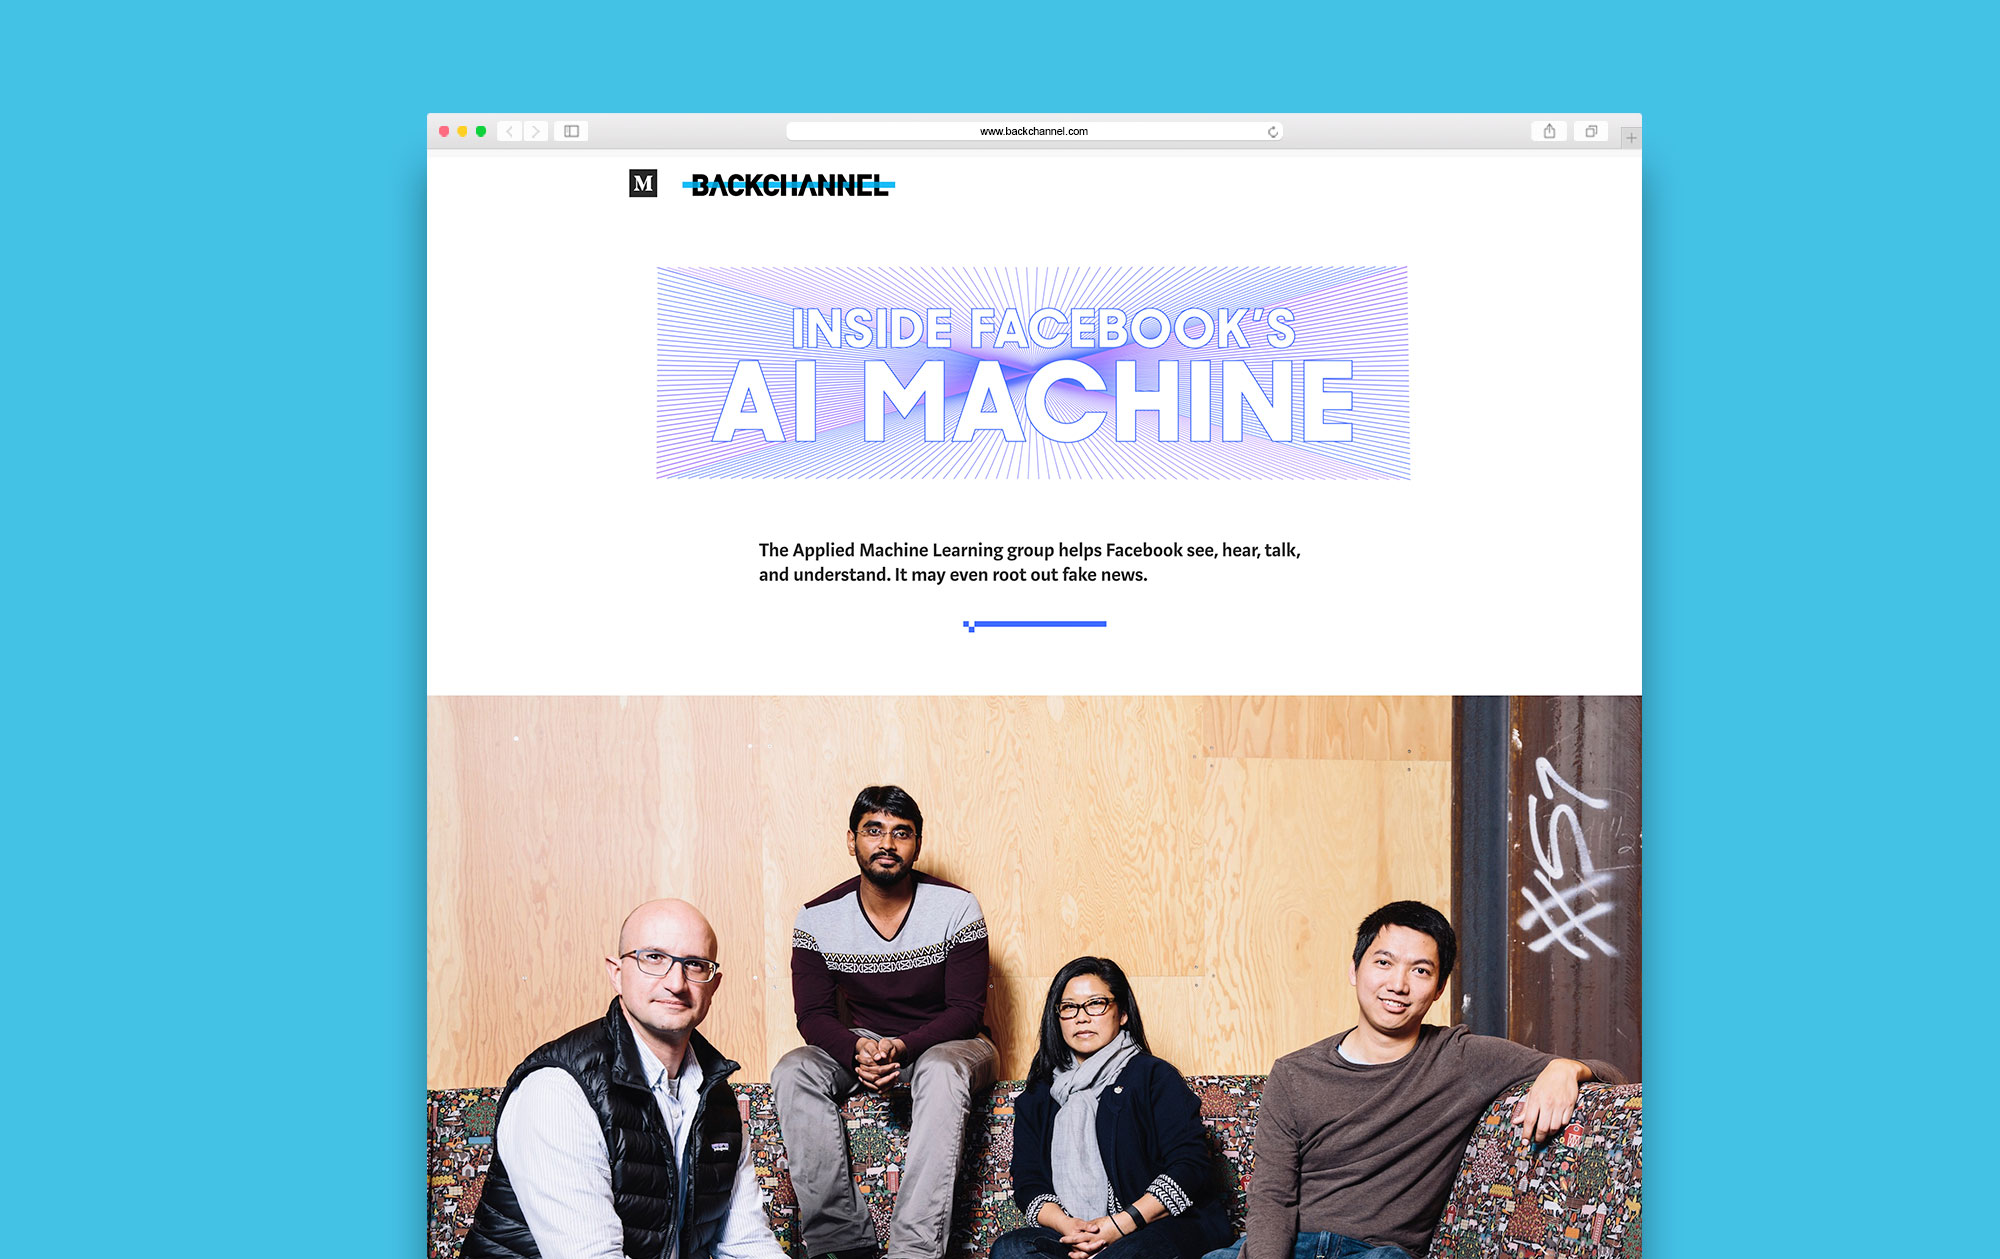 Inside Facebook's AI Machine by Steven Levy Photographs by Stephen Lam